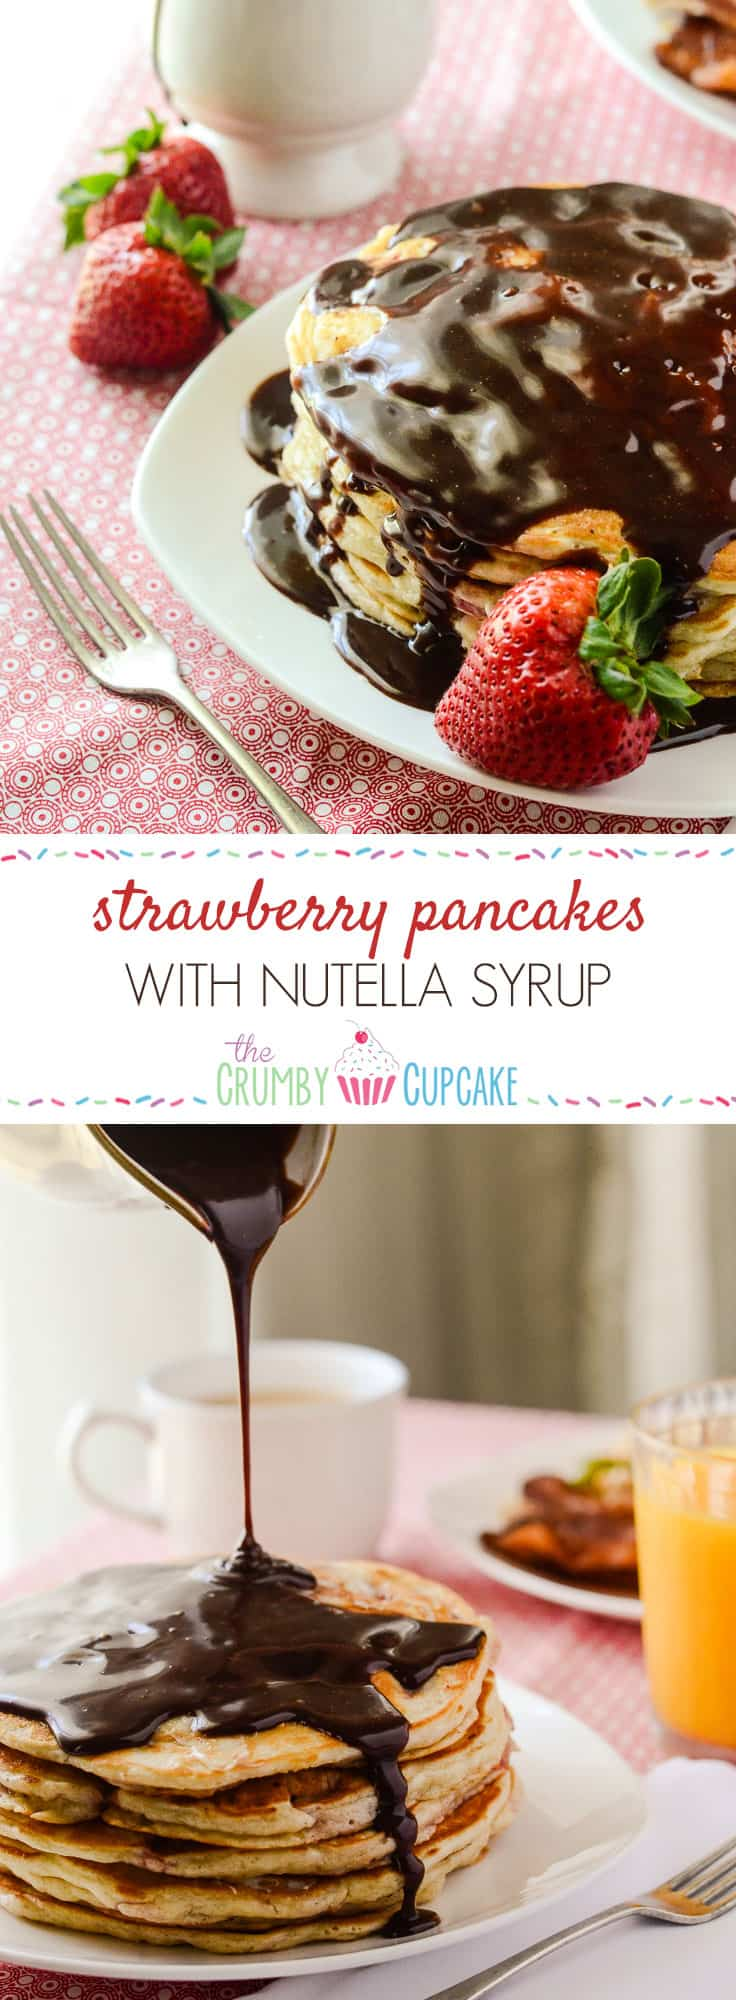 Strawberry Pancakes with Nutella Syrup • The Crumby Kitchen